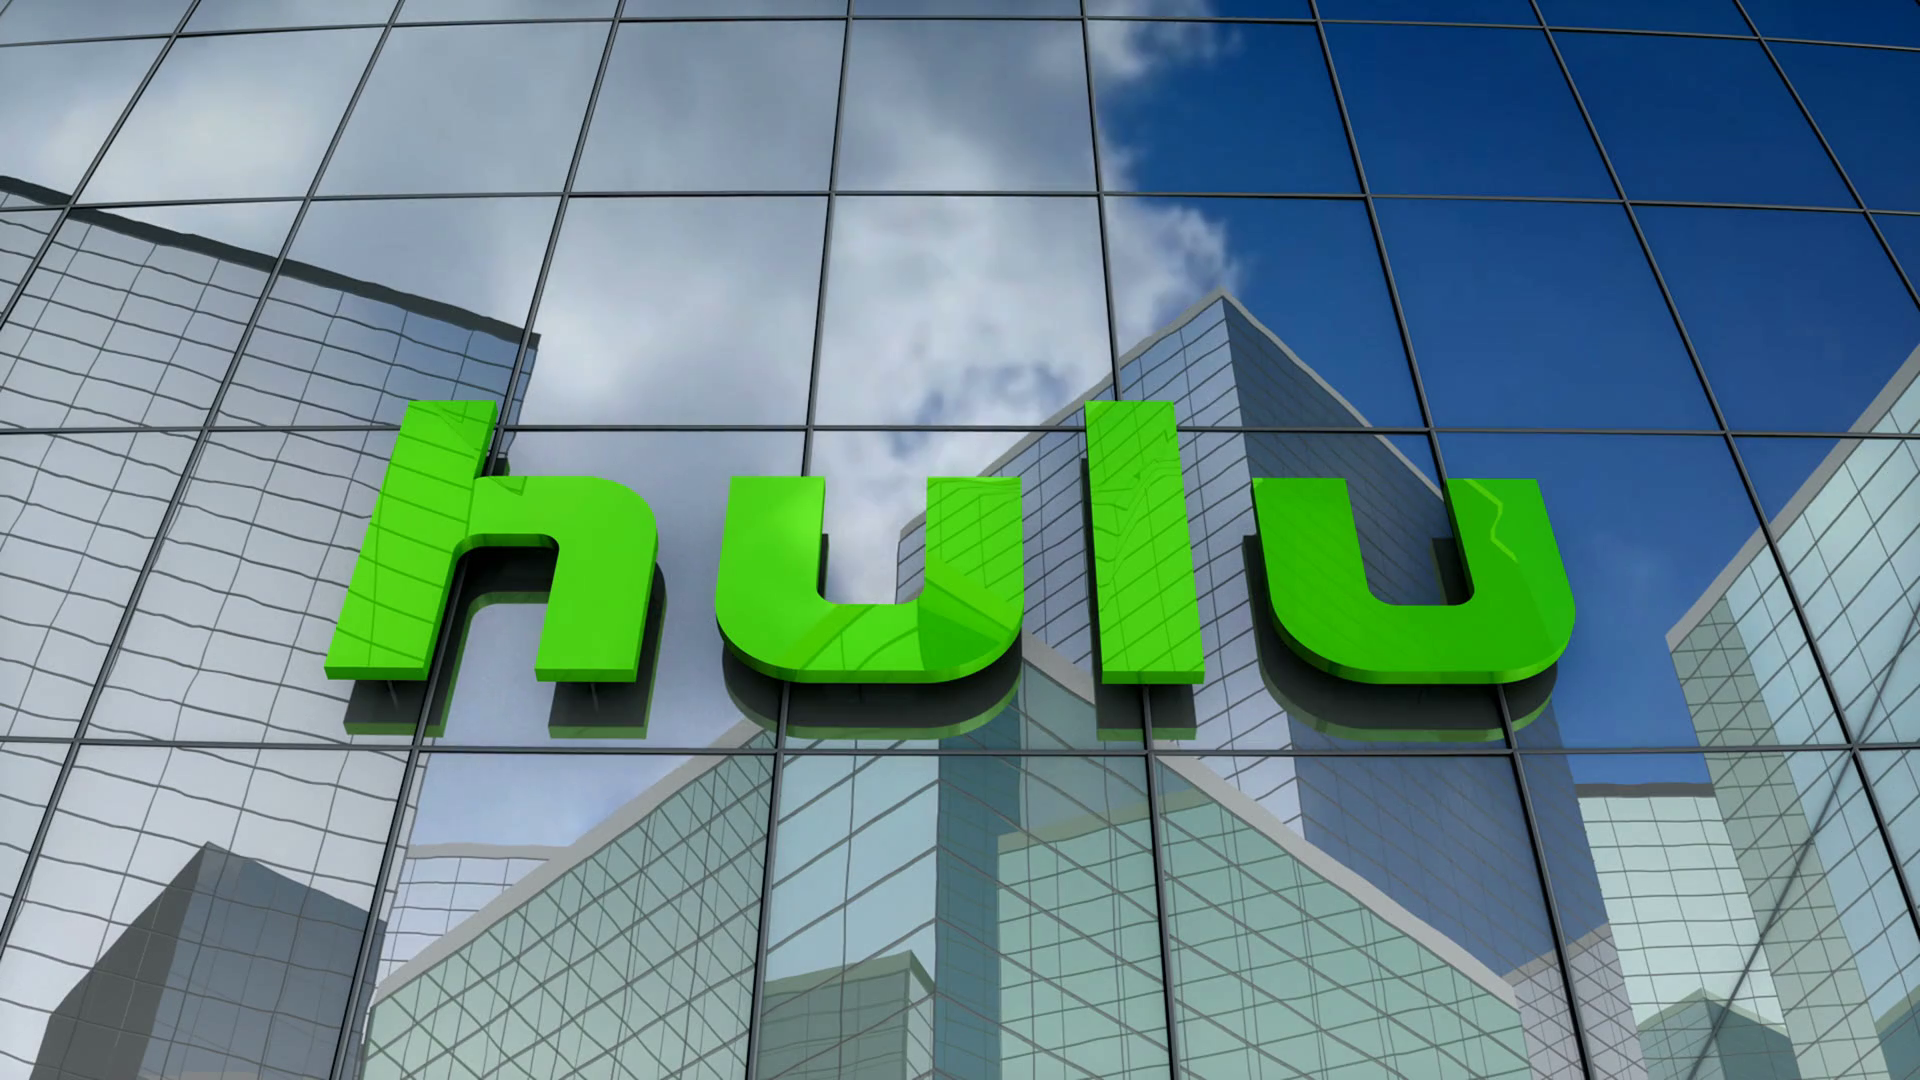 videoblocks-editorial-hulu-llc-logo-on-glass-building_by3ttgpkf_thumbnail-full01.png